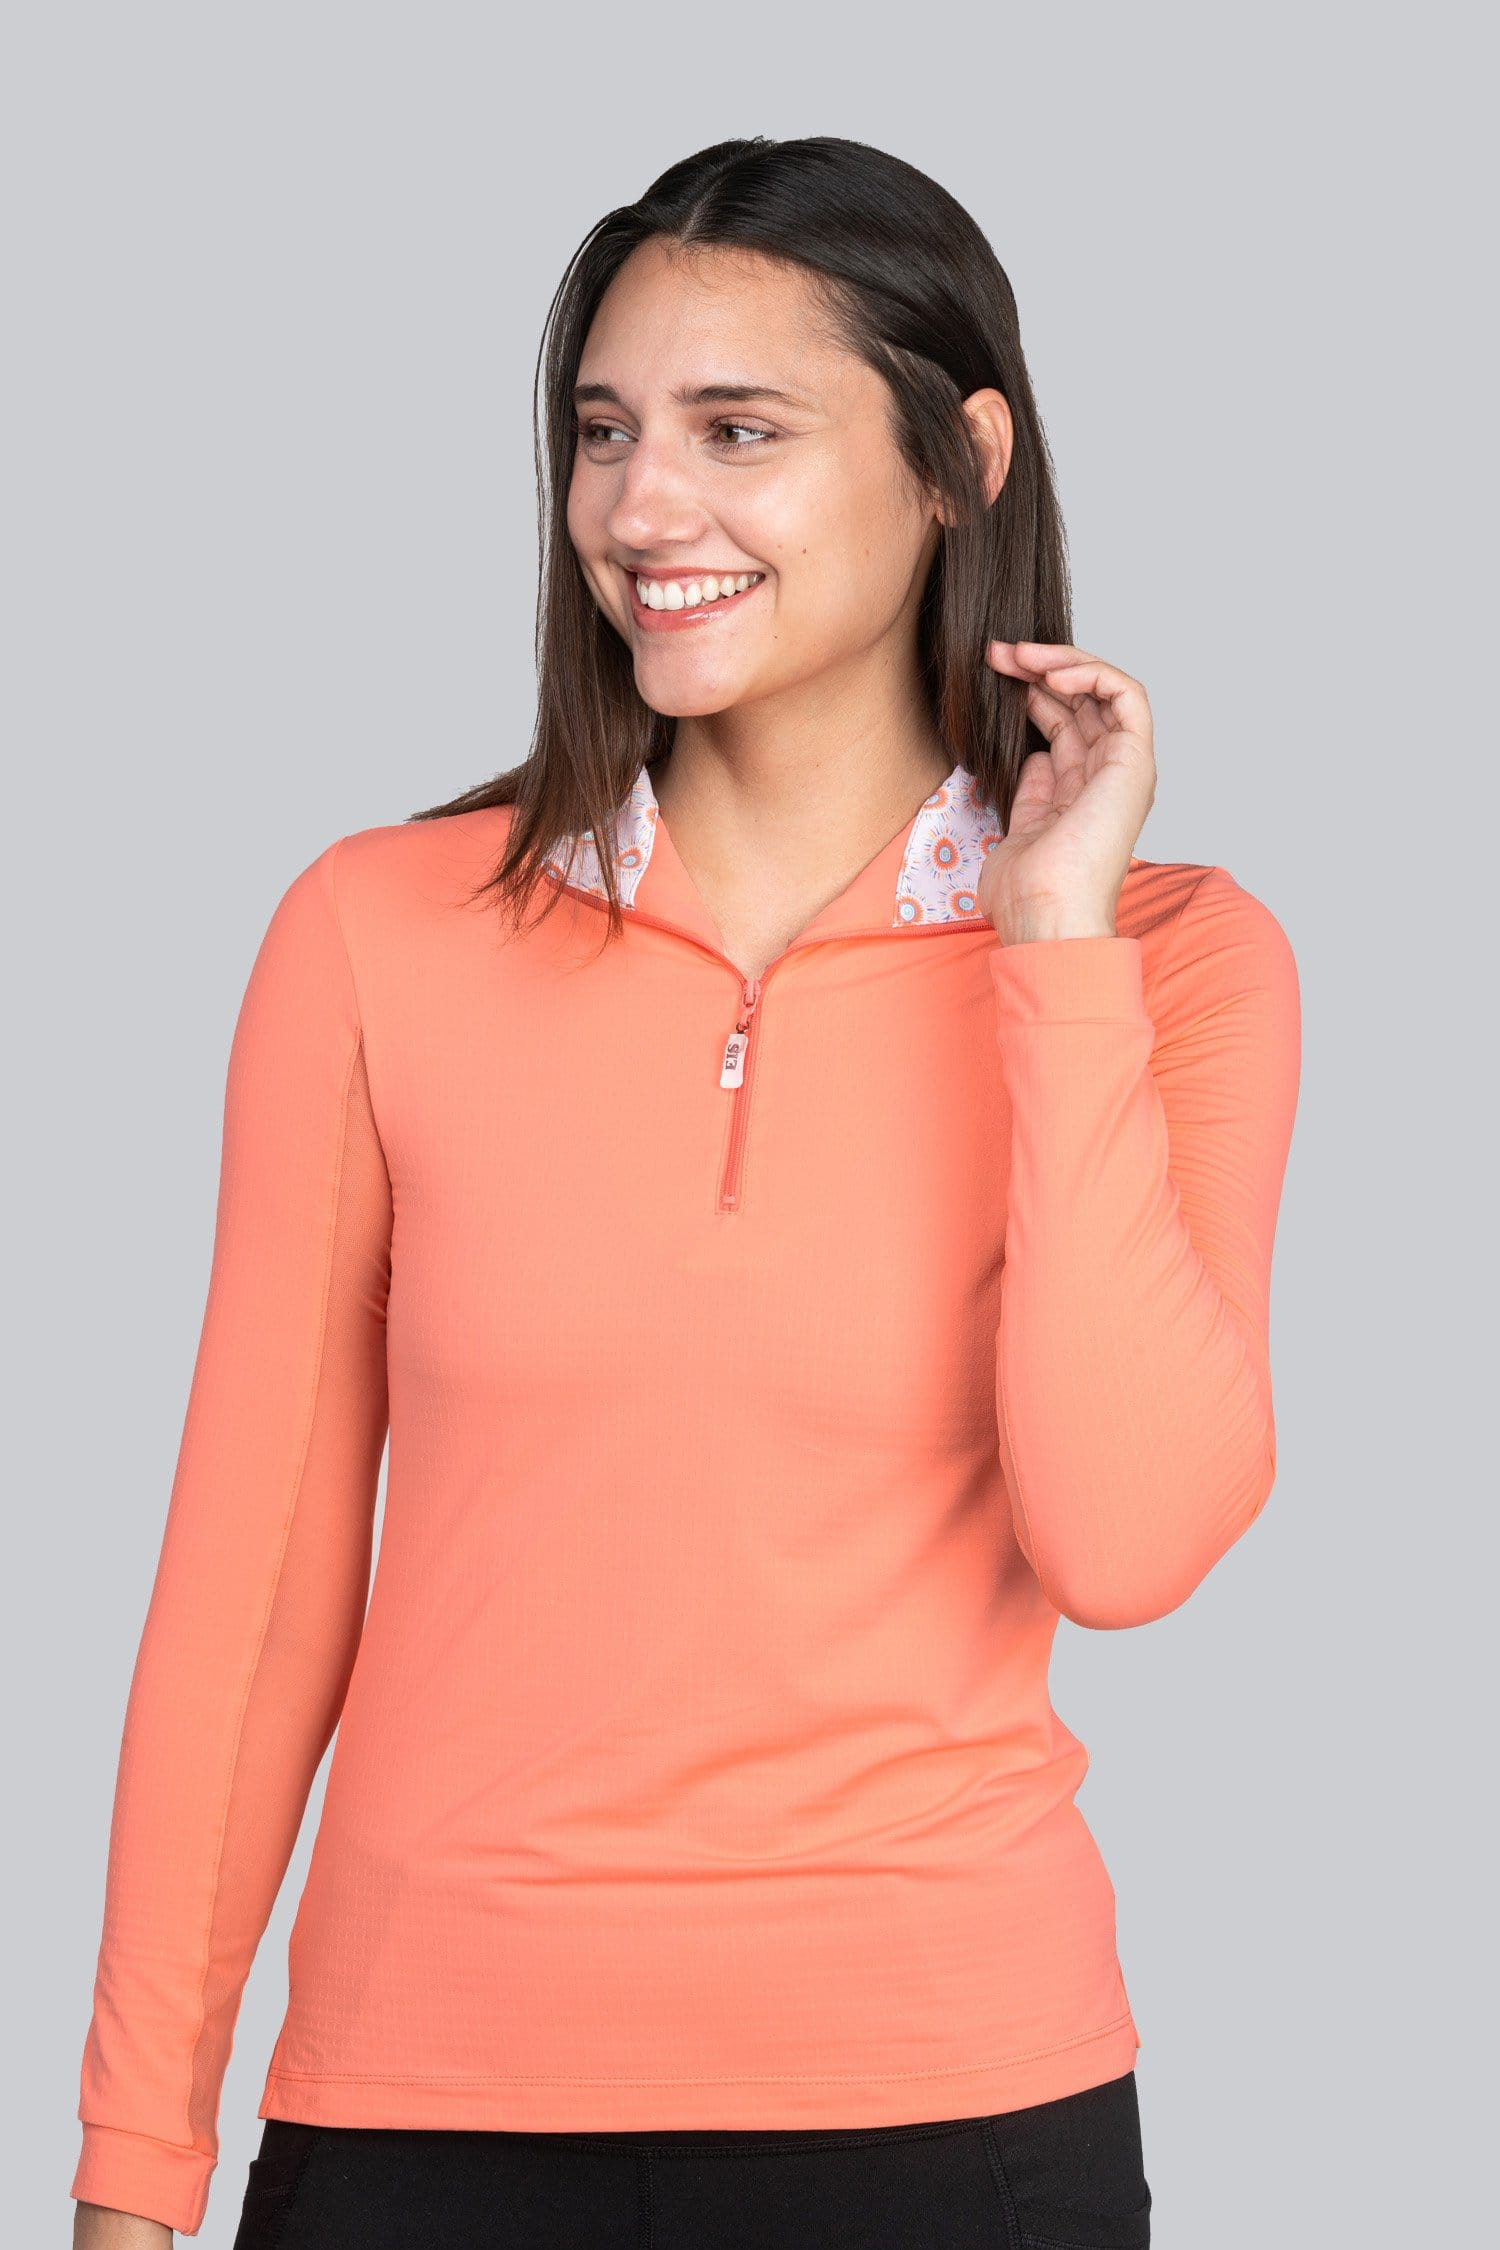 EIS Shirt XSmall EIS Sorbet/Sunburst Pattern Sunshirt equestrian team apparel online tack store mobile tack store custom farm apparel custom show stable clothing equestrian lifestyle horse show clothing riding clothes horses equestrian tack store